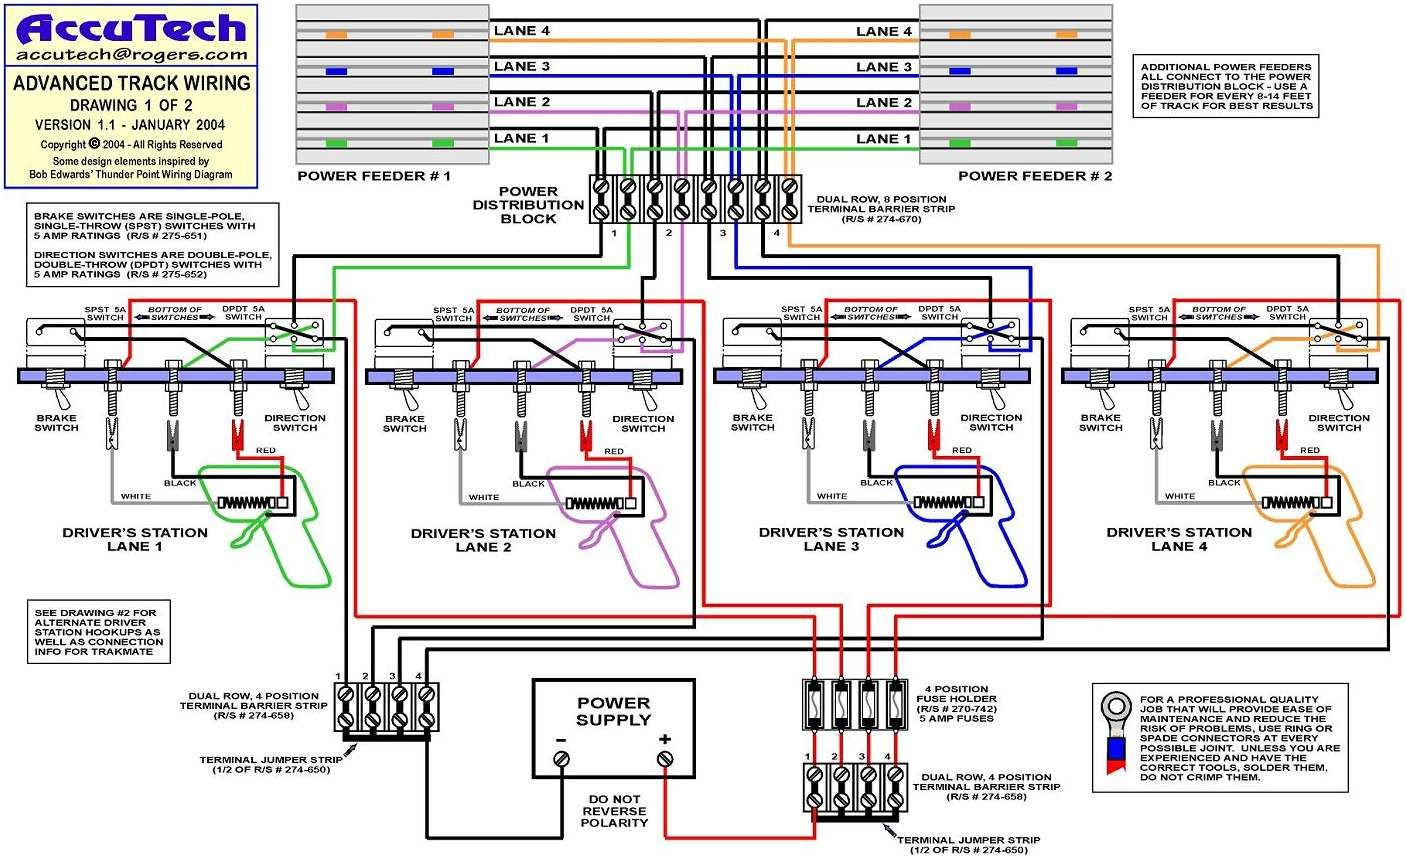 ho track wiring wiring diagram sys ho track wiring guide ho track wiring [ 1406 x 858 Pixel ]